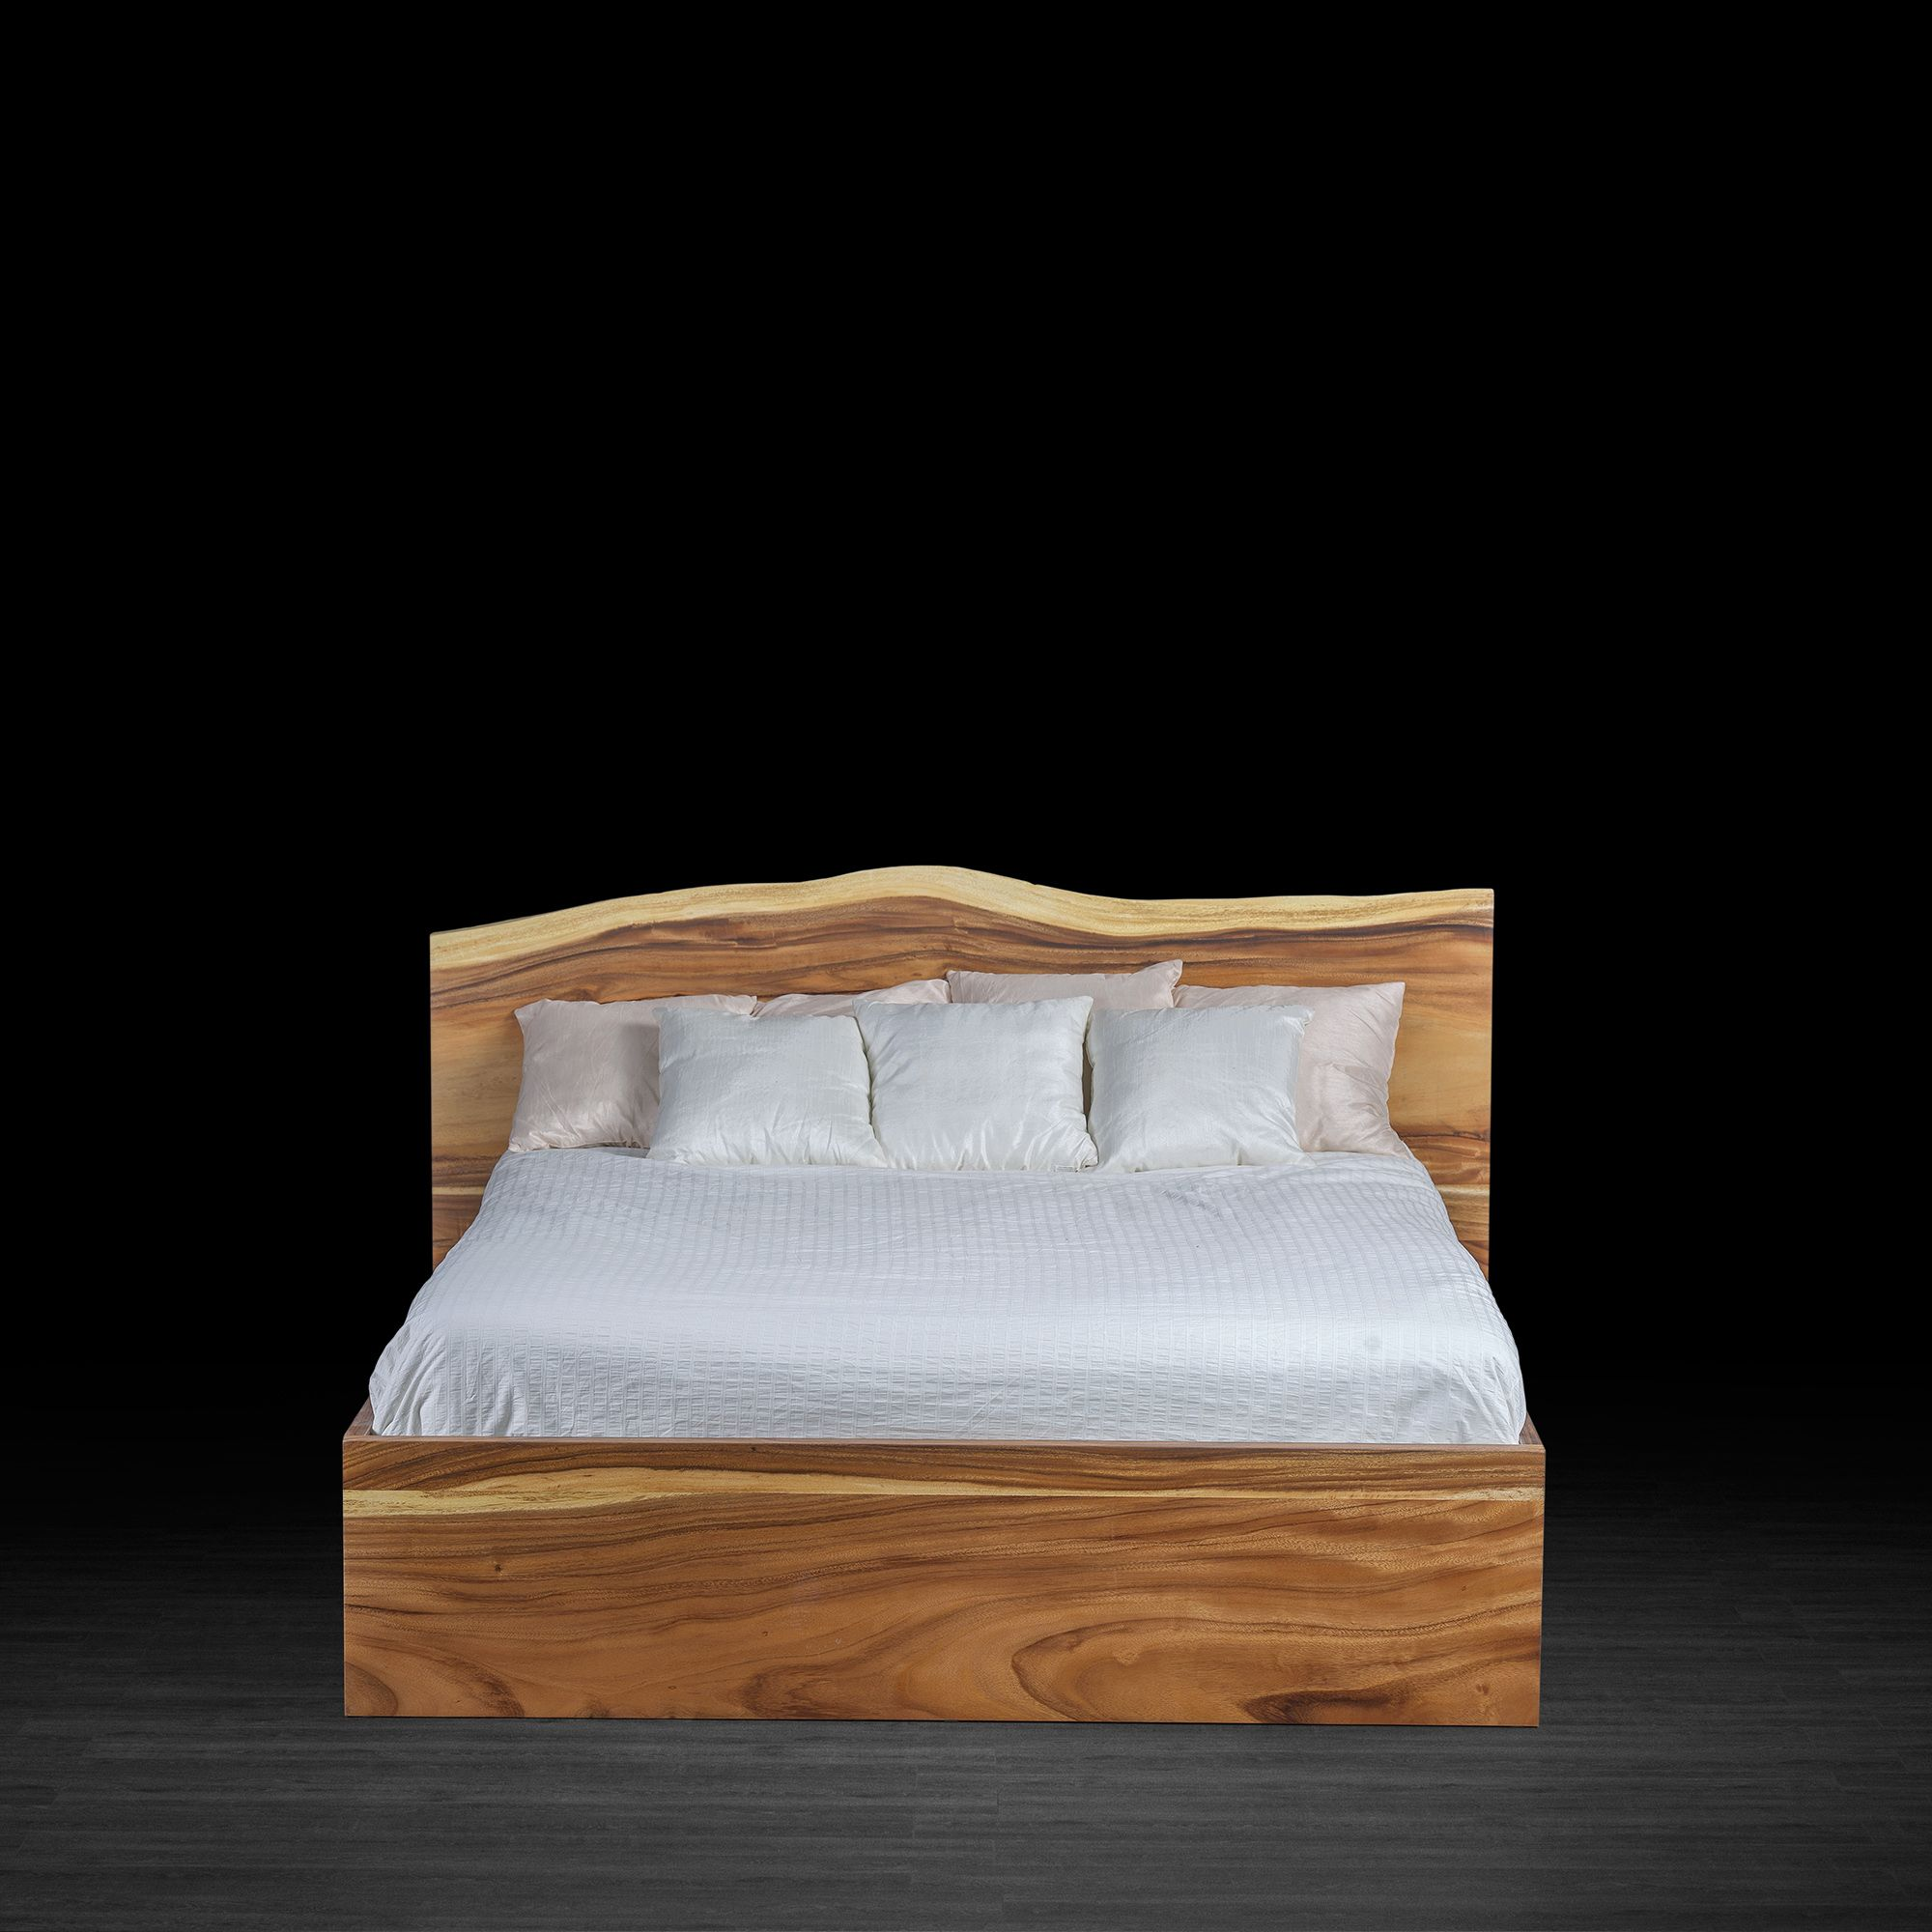 Premium Freeform Bed Made Of Suar Wood Love The Natural Line Of The Headboard Avec Images Decoration Chambre Lit Meuble